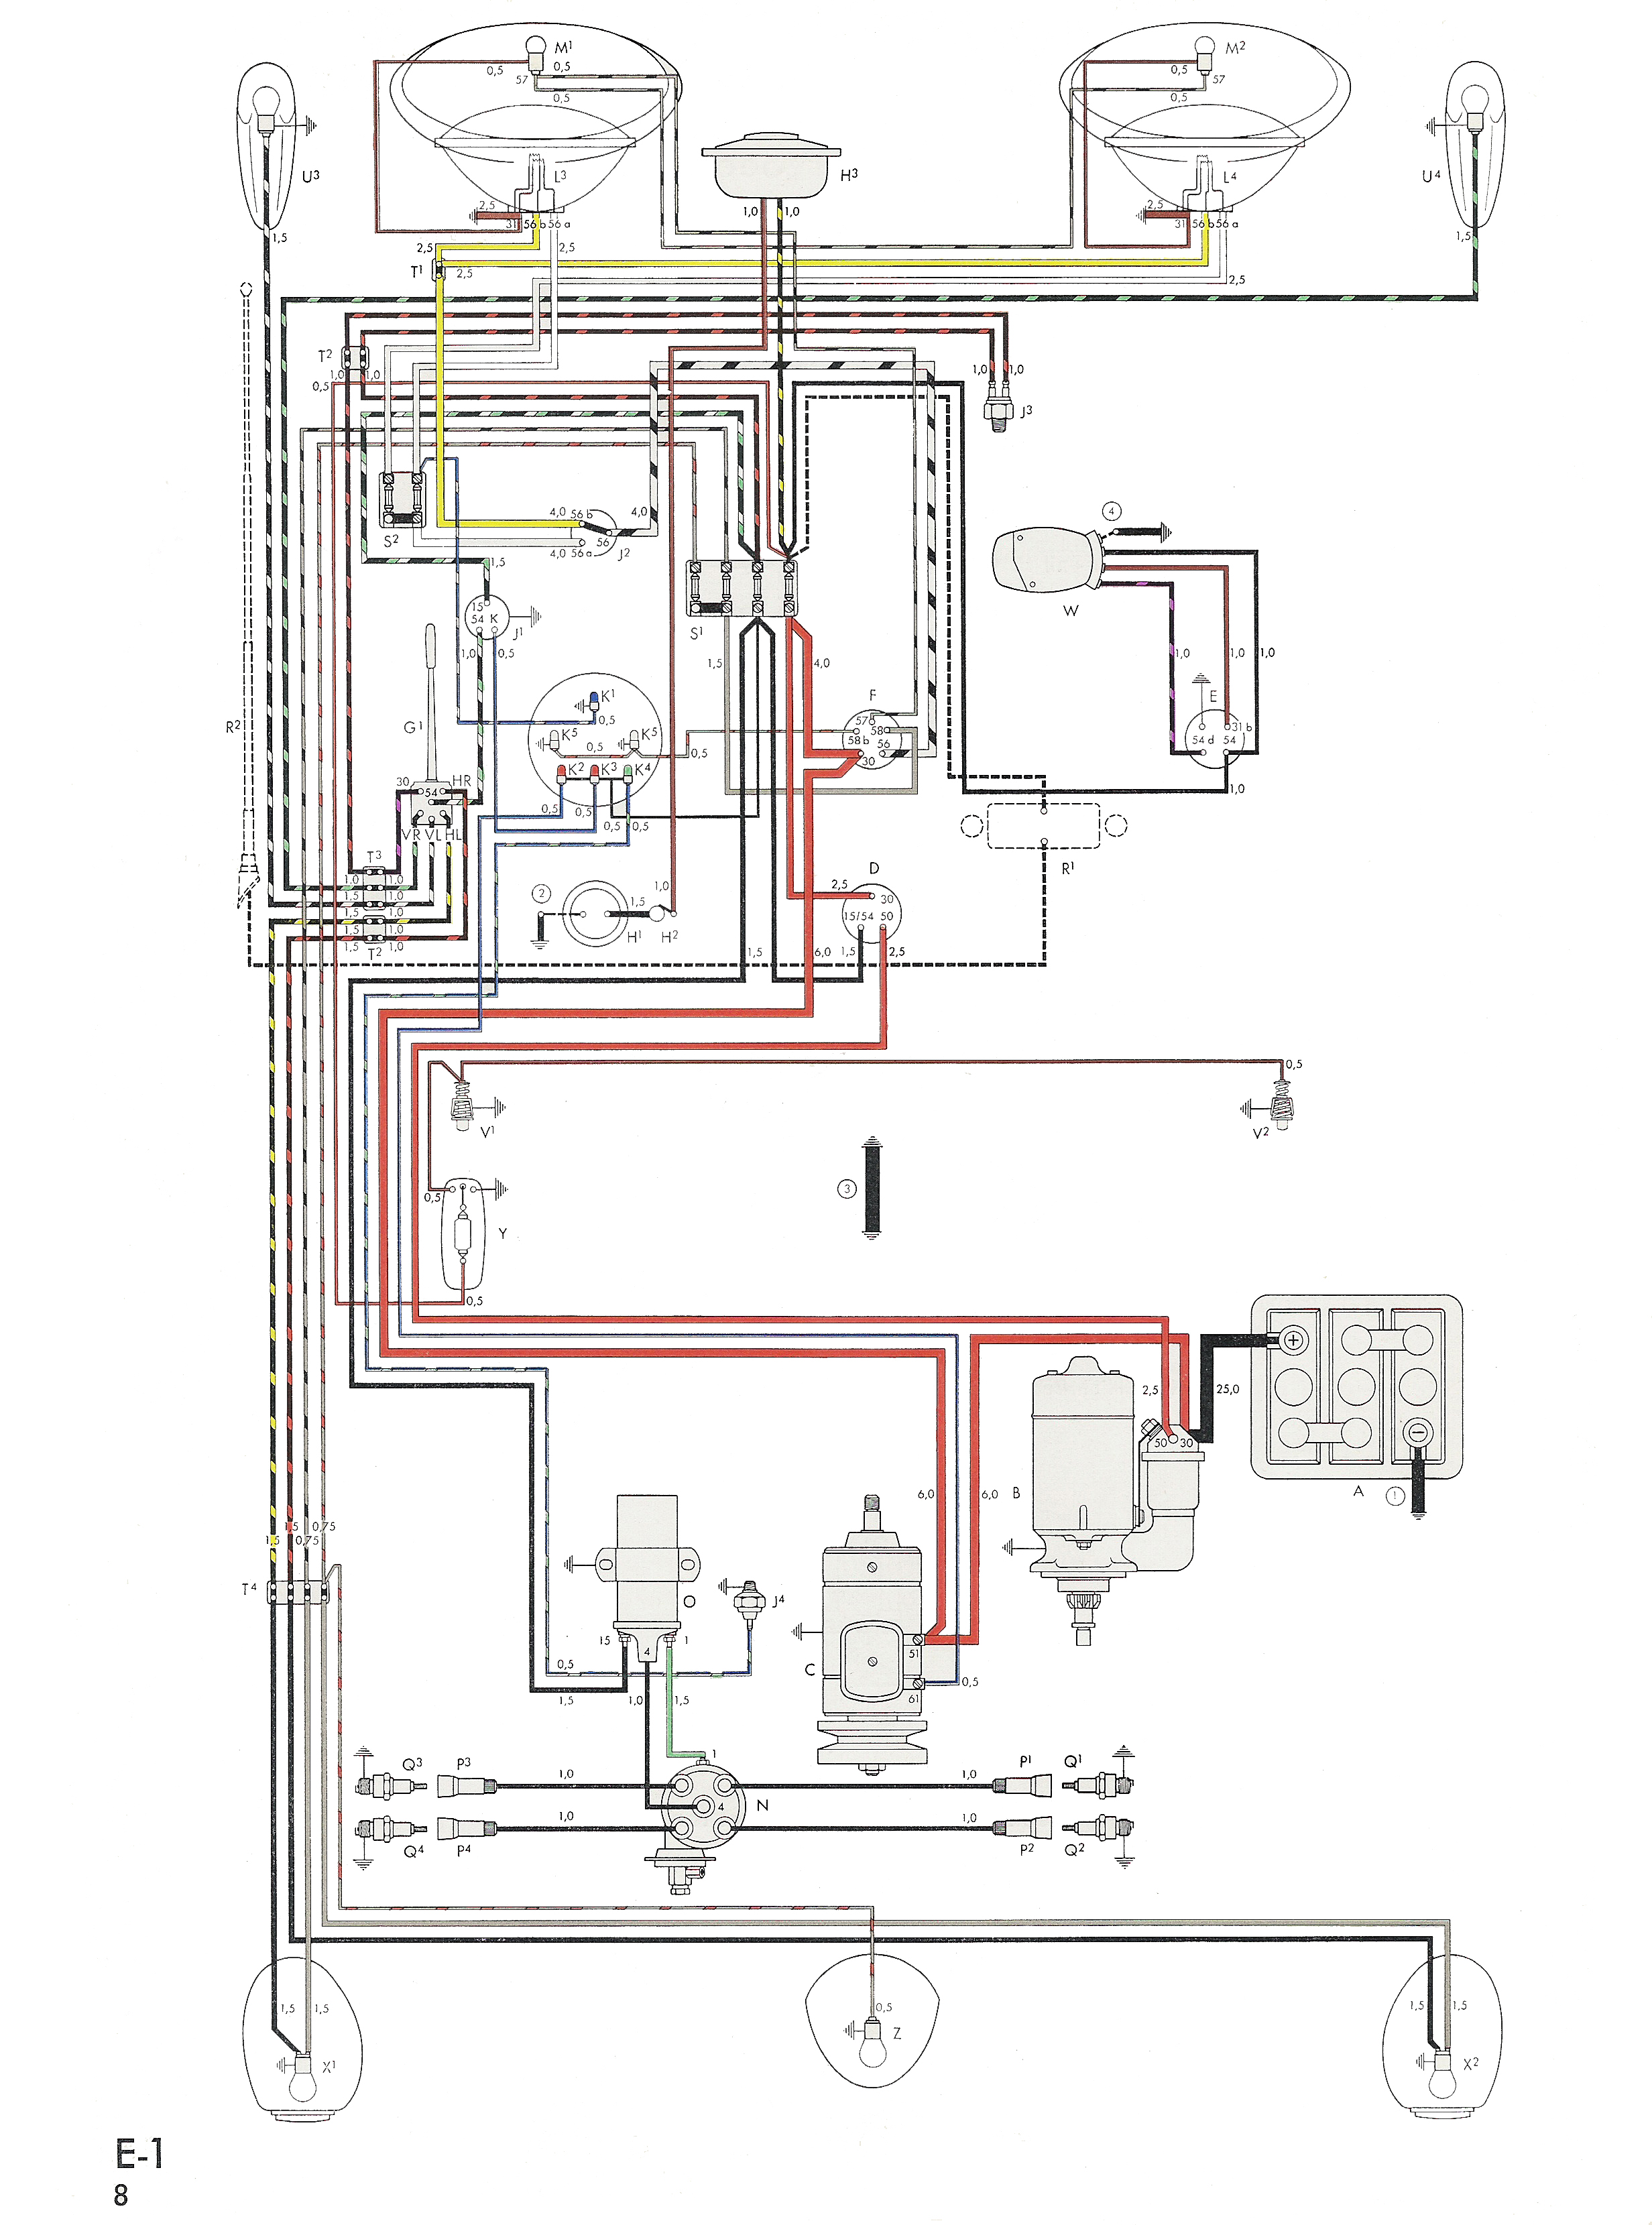 Chevy Express Van Wiring Diagrams 3 Ls1 Engine Starter Wiring Diagram